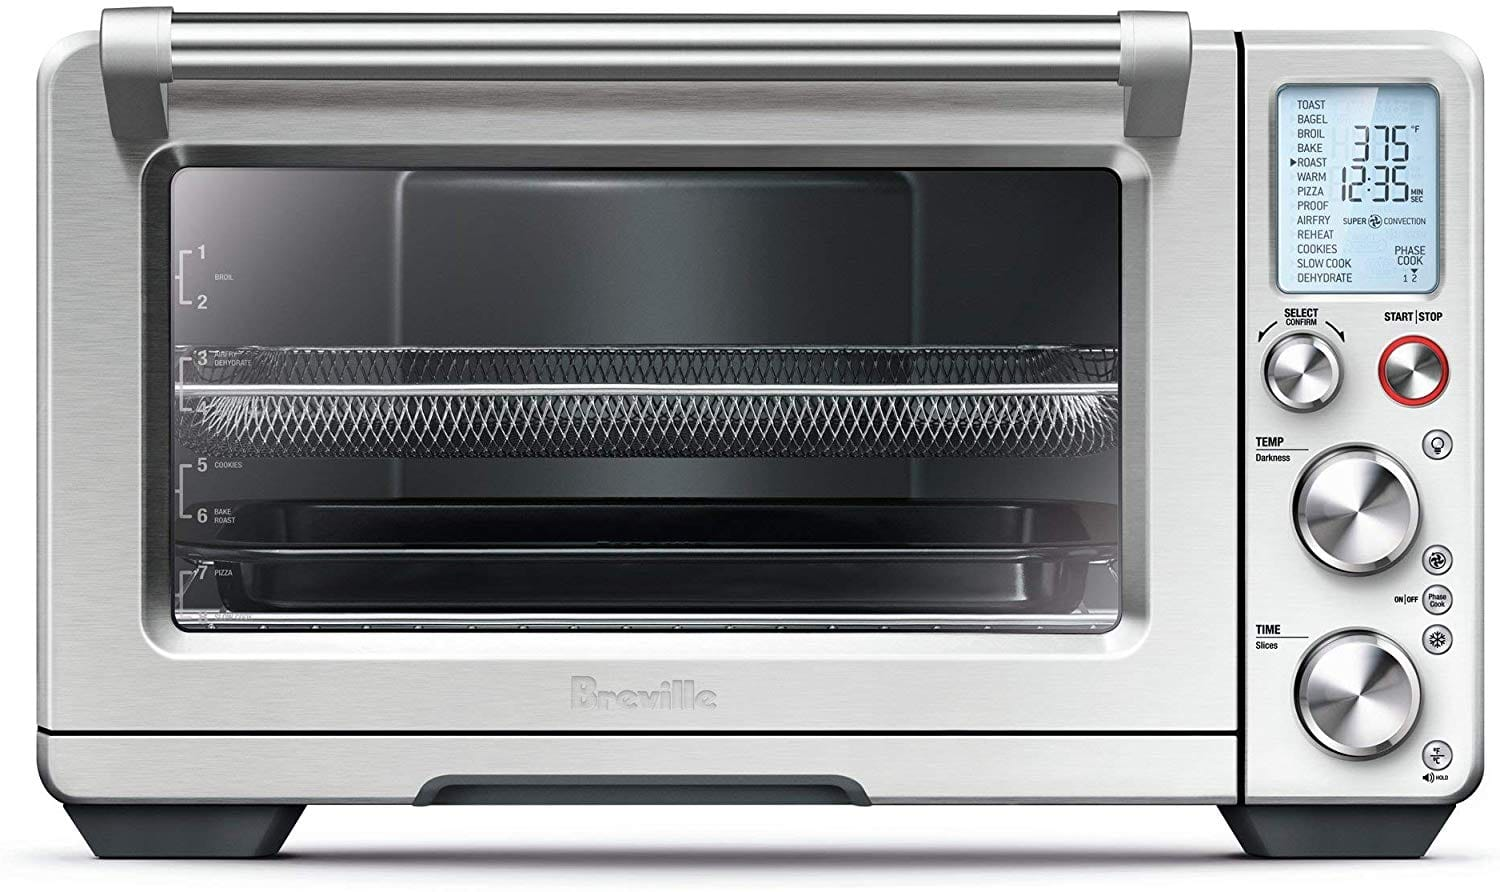 Breville Bov900bss Convection Air Fry Smart Oven